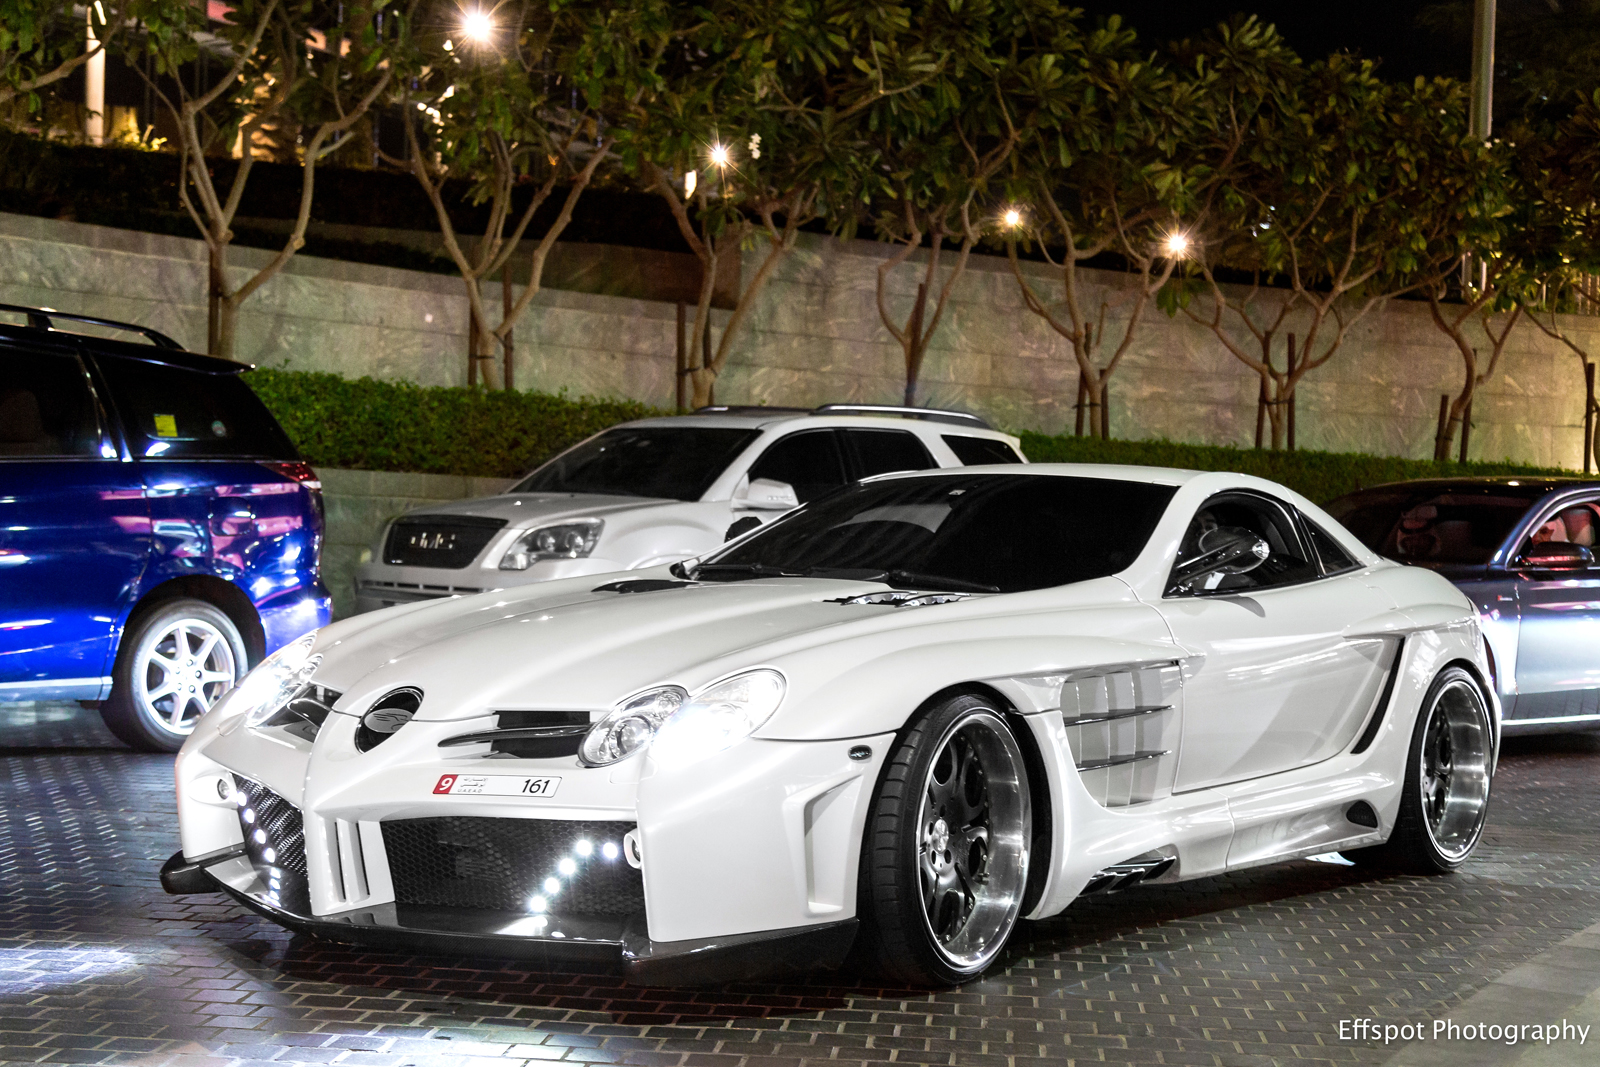 Photo Of The Day: Mercedes Benz SLR McLaren By FAB Design In Dubai